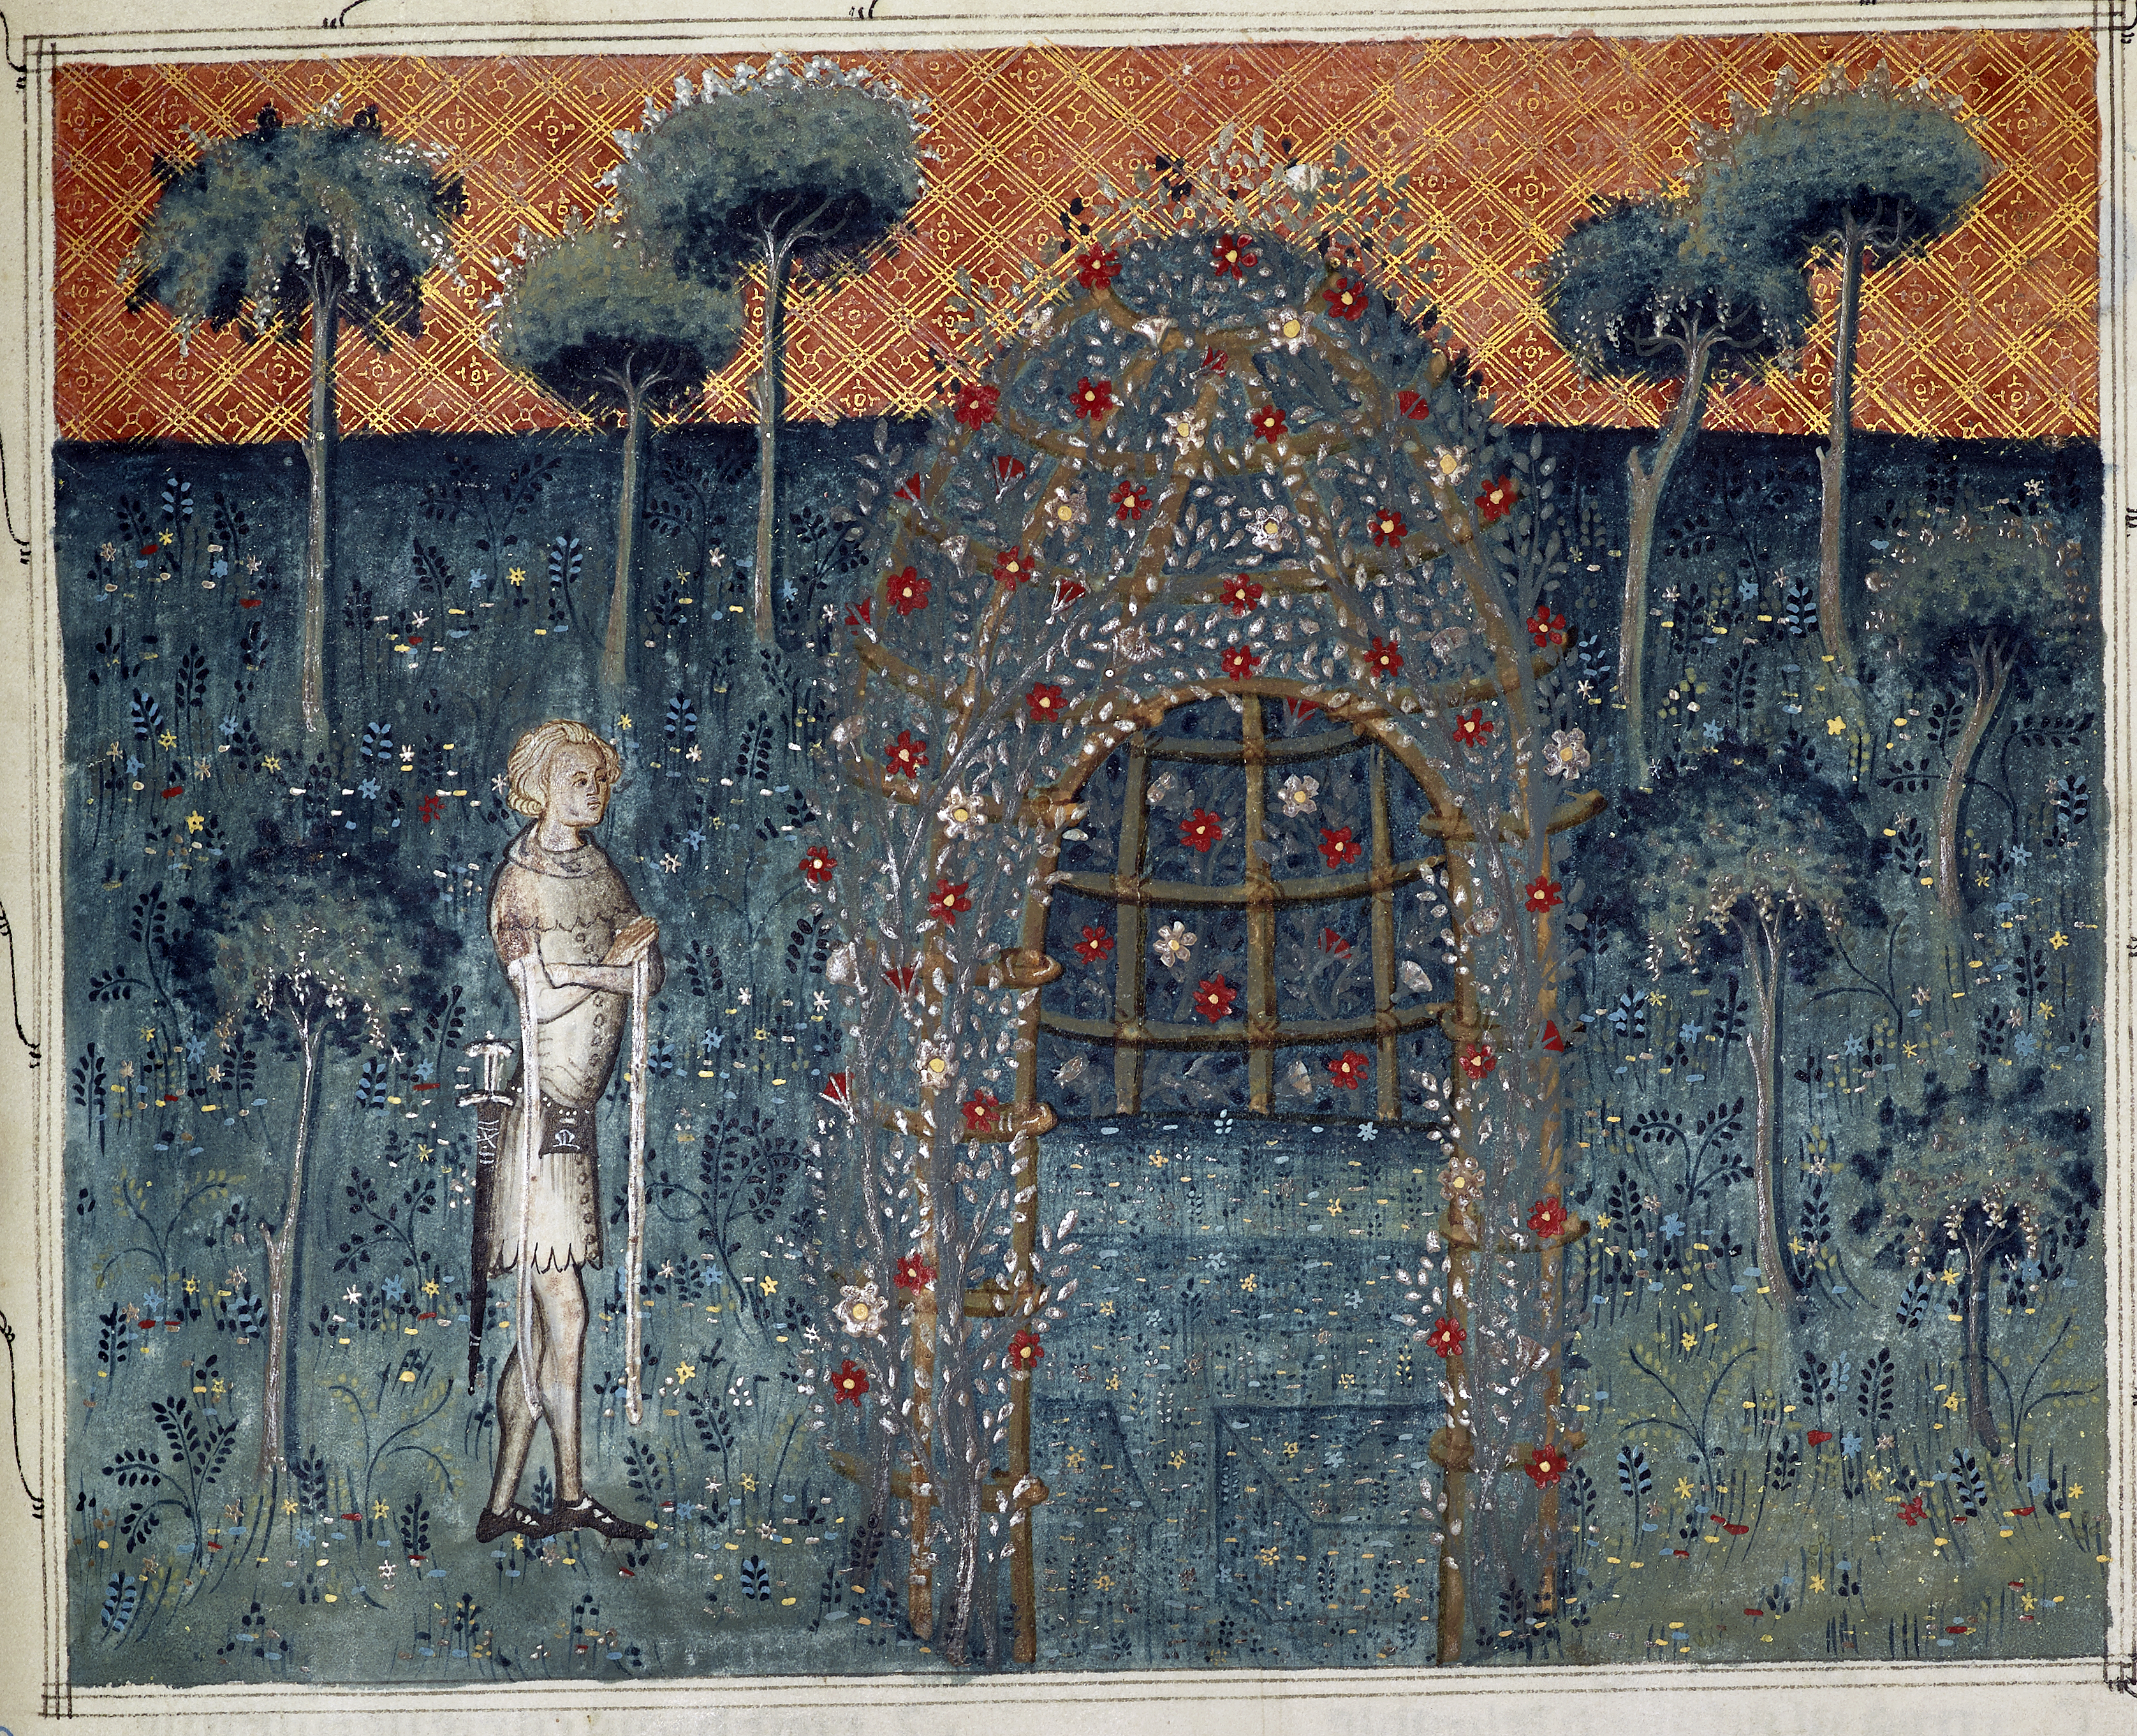 Confort Bain Design Bois Guillaume the empty bower and the lone fountain